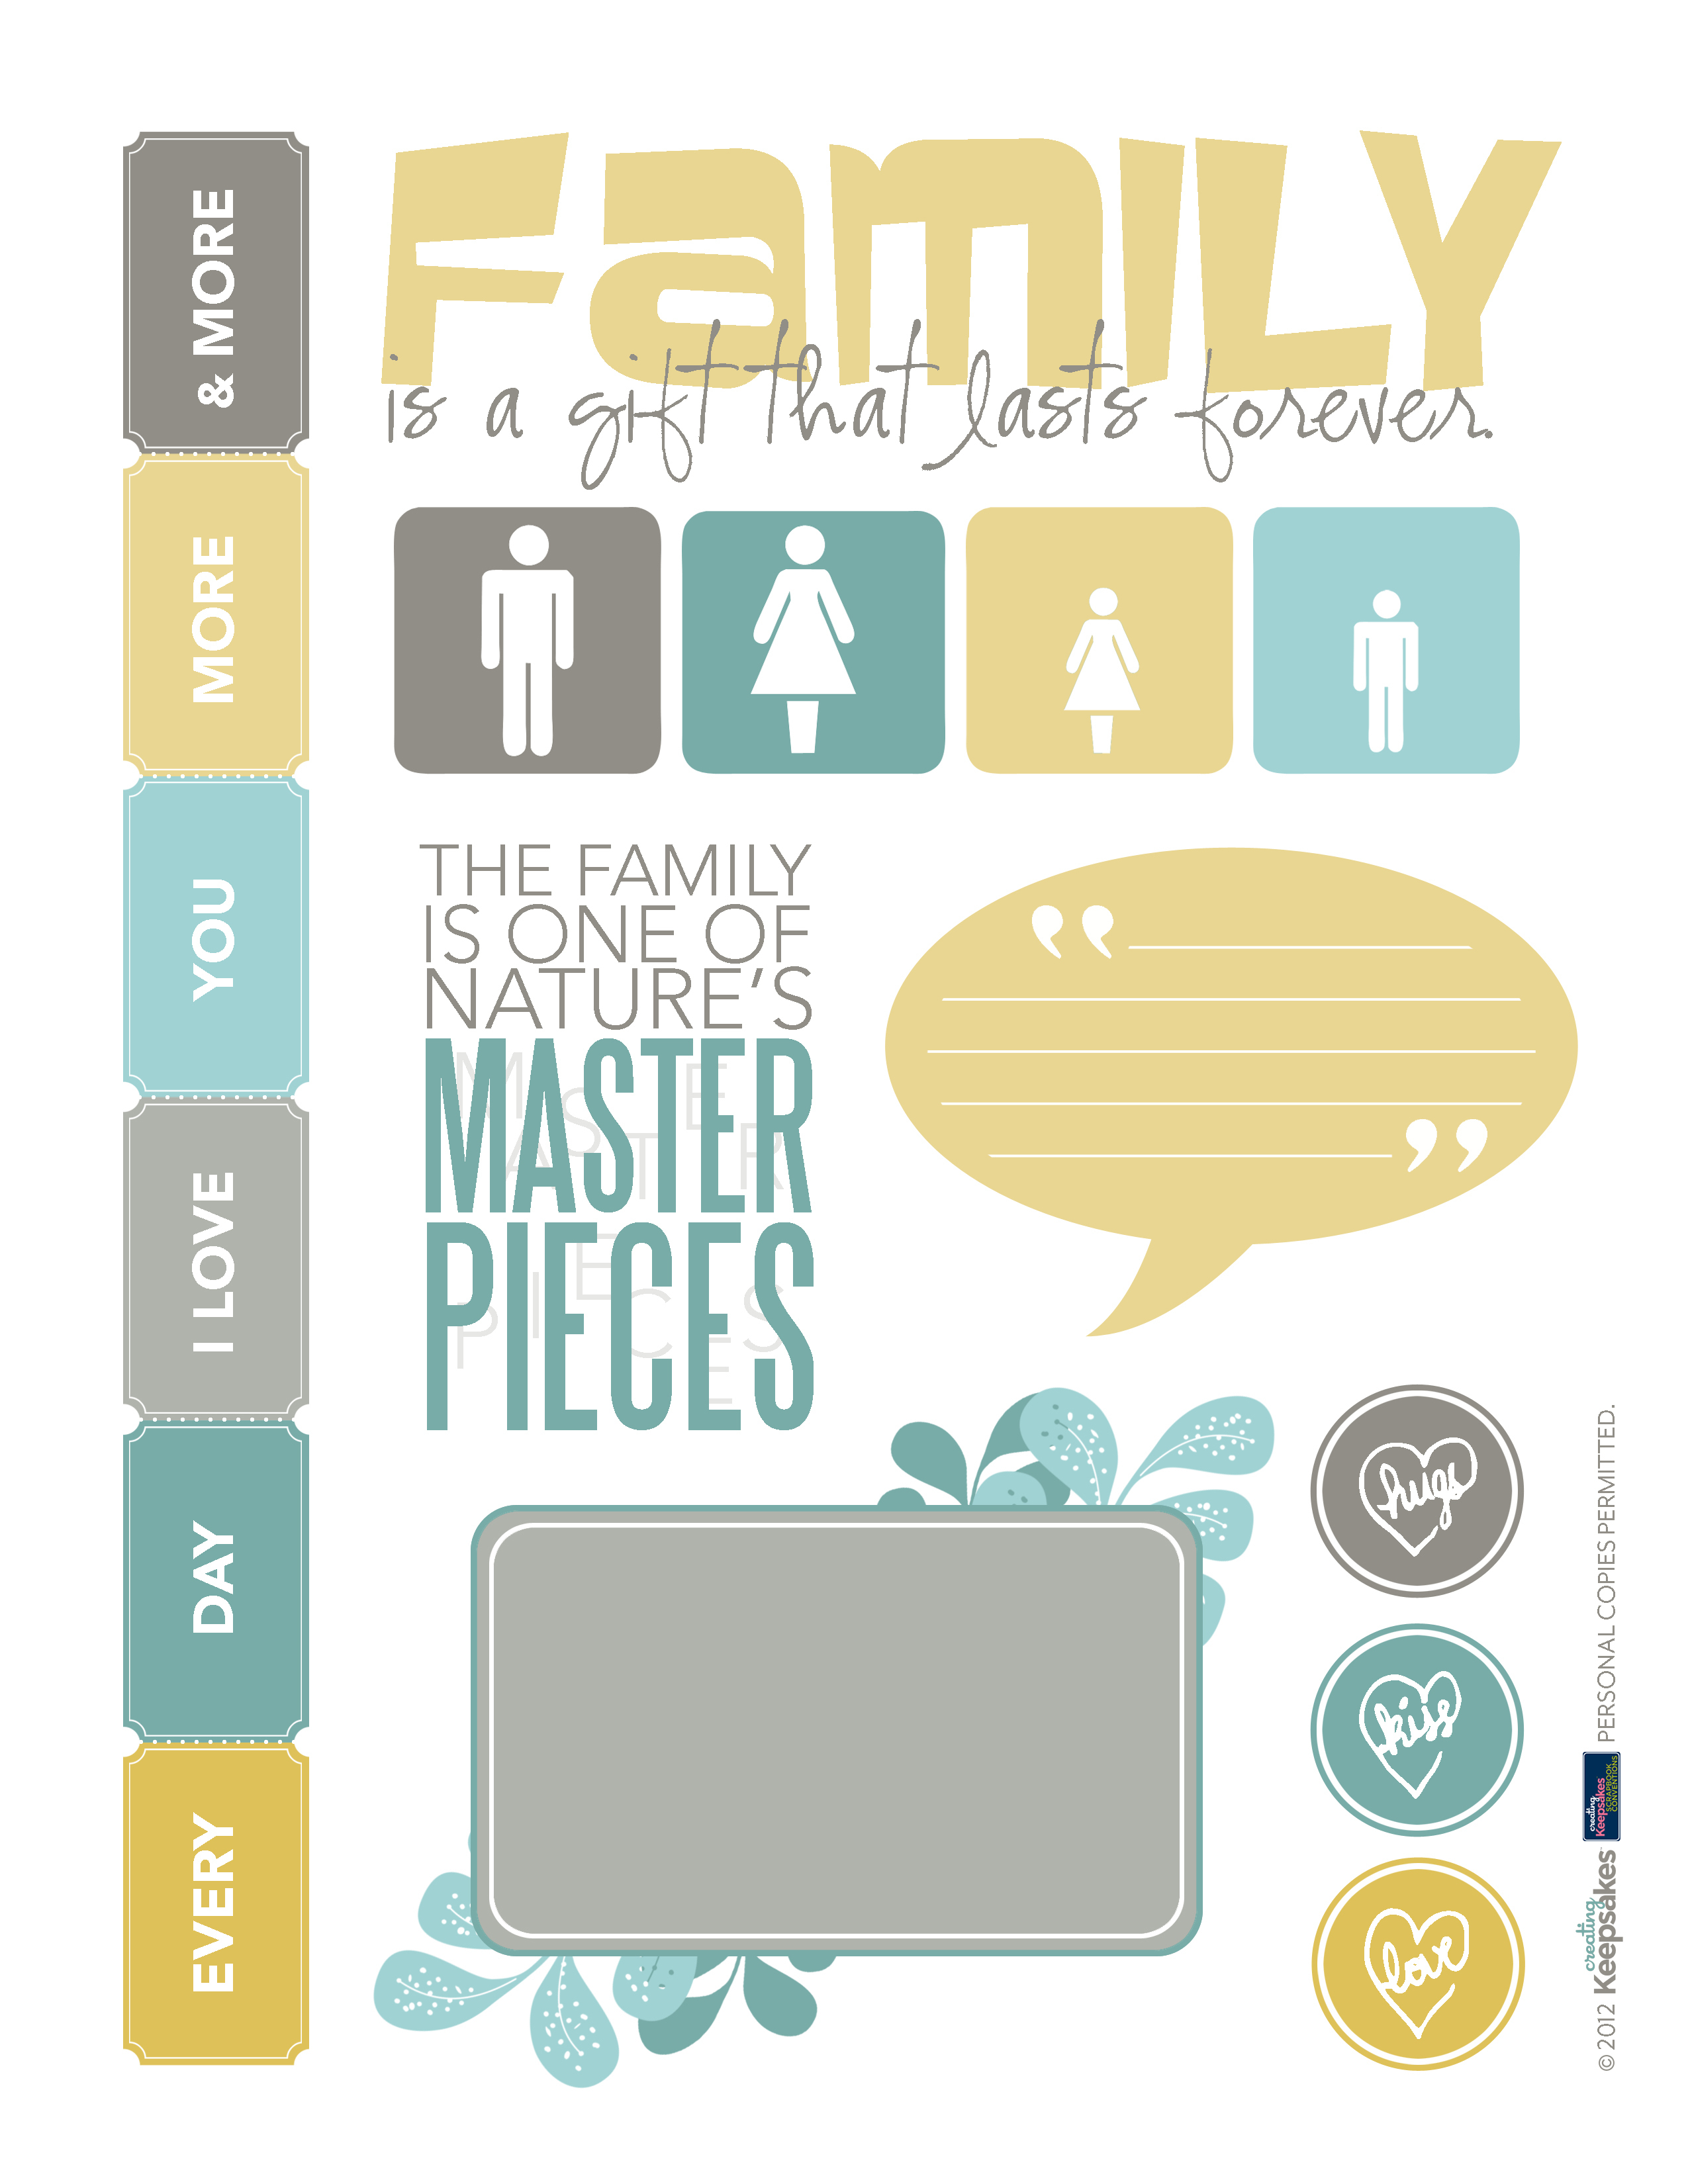 Download This Page Of Family Printables For Your Scrapbook Layouts - Free Printable Scrapbook Page Designs